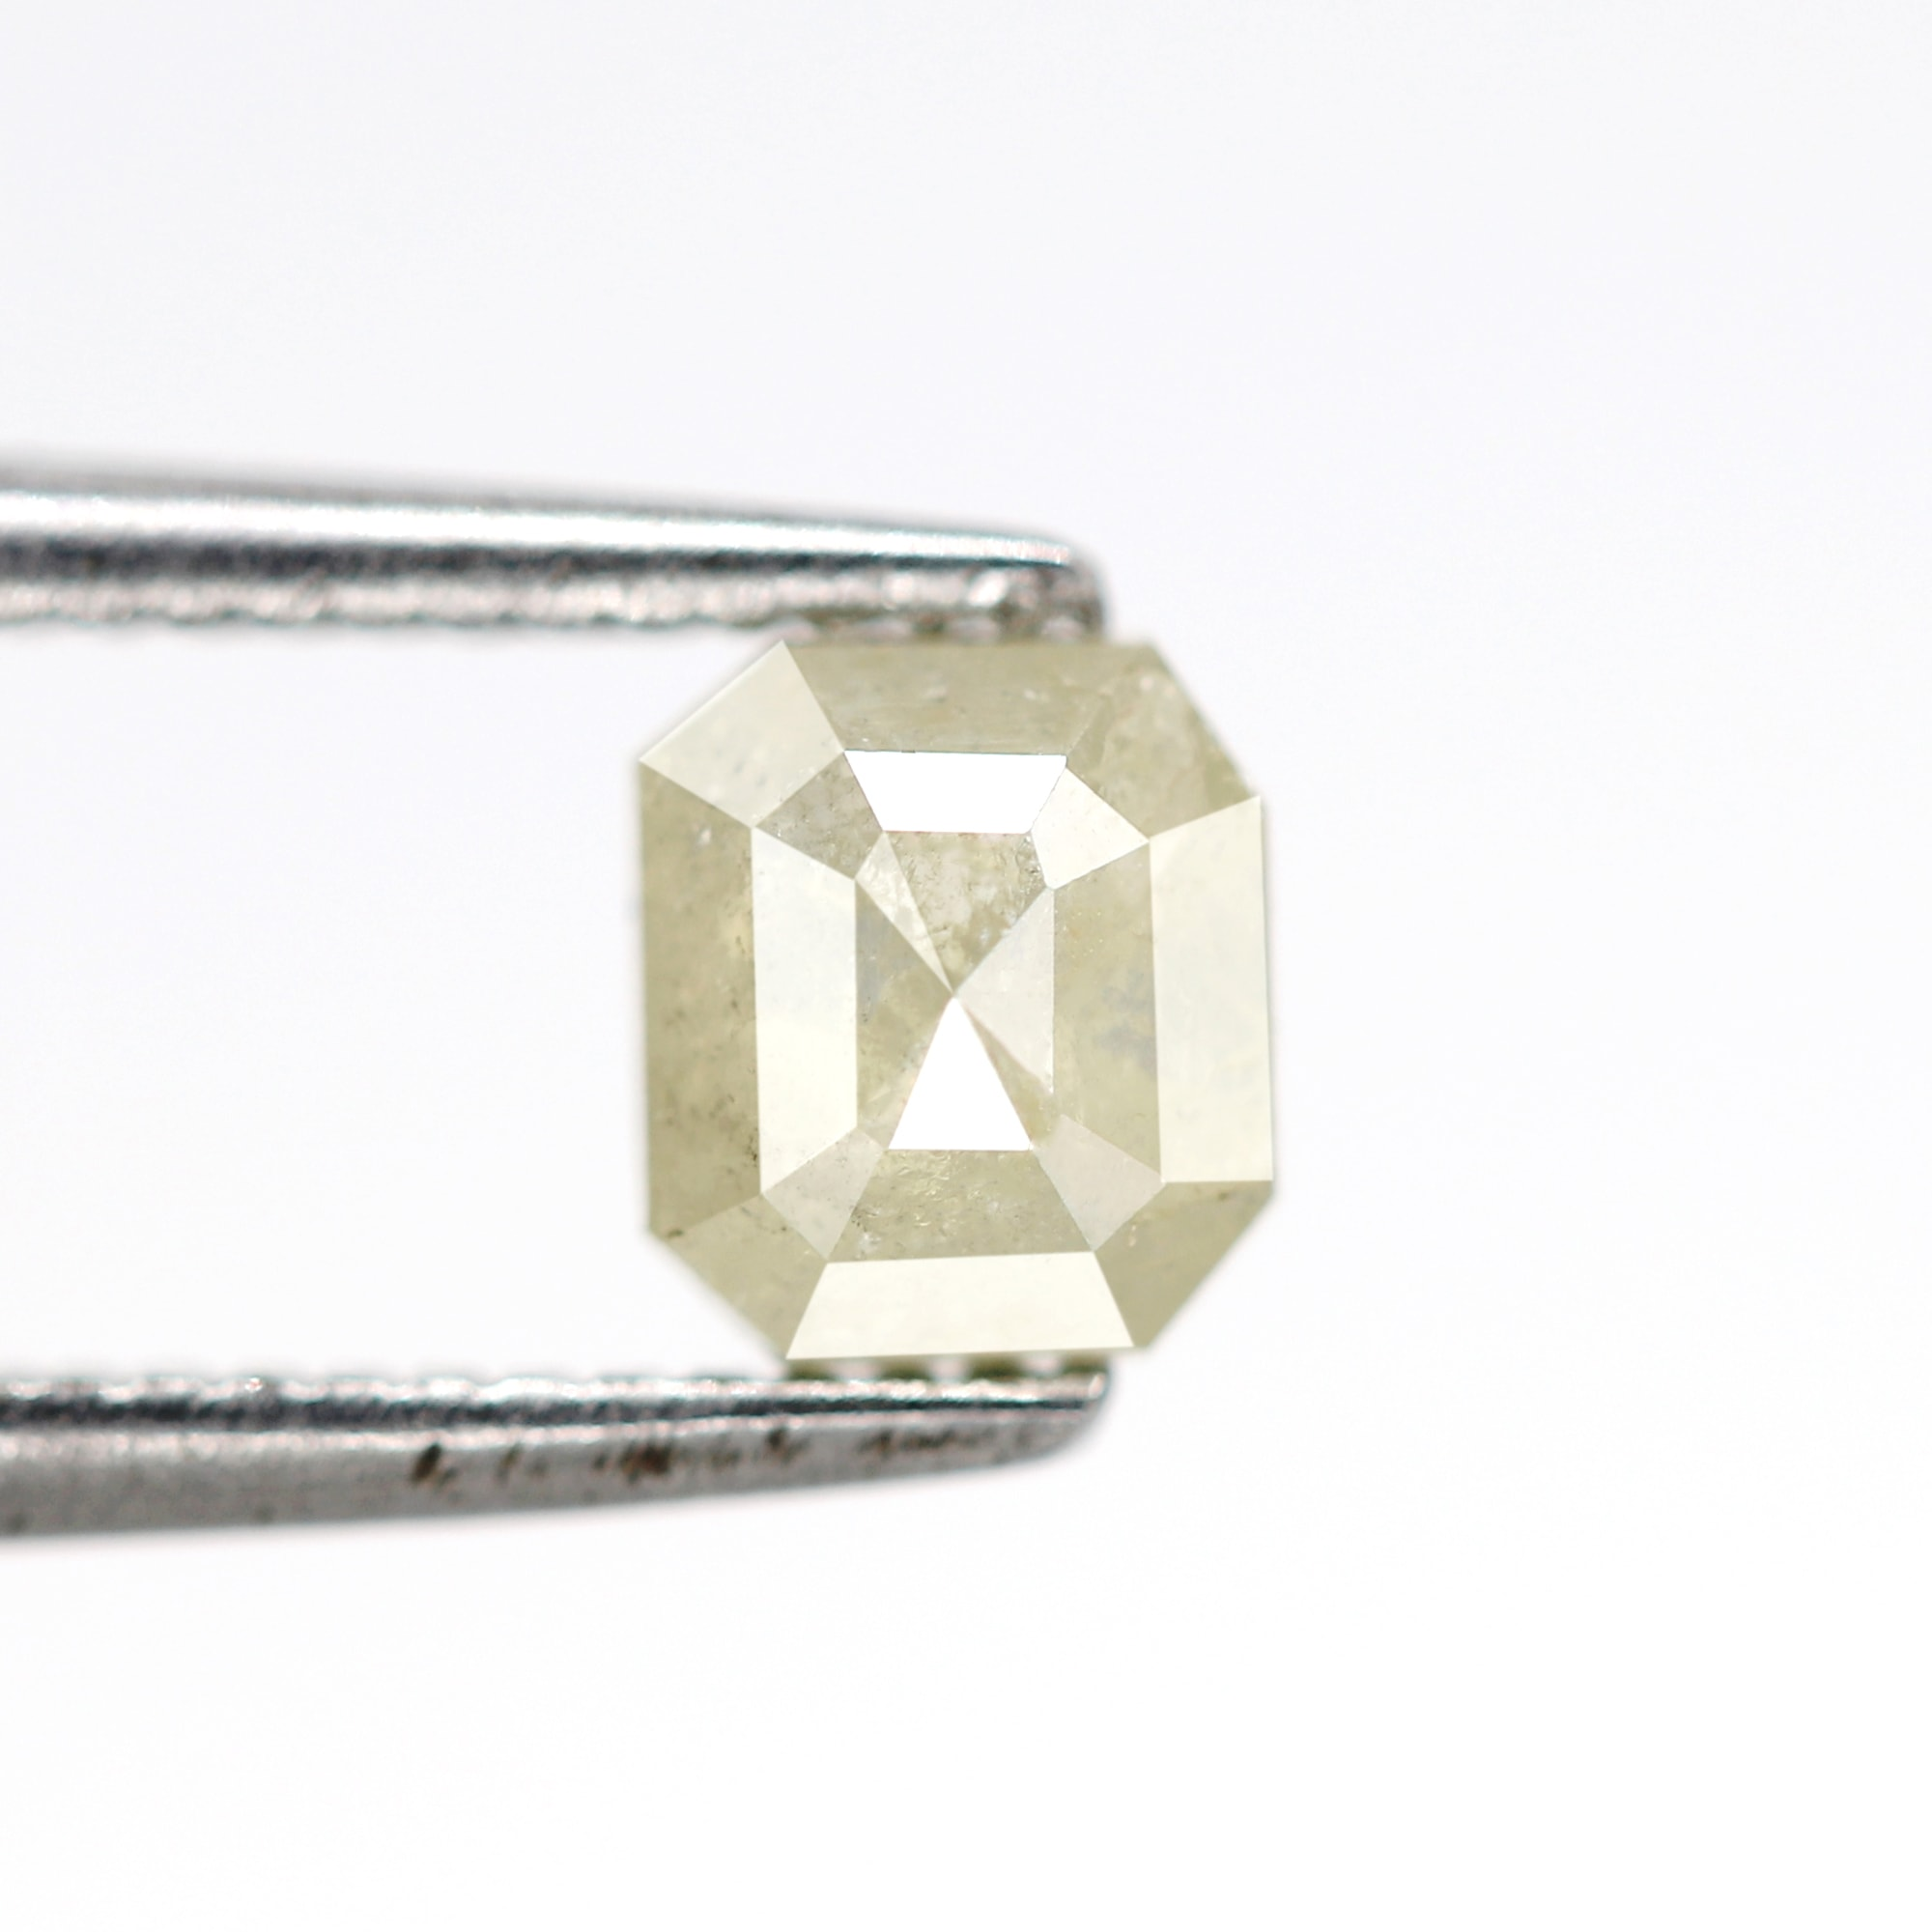 good quality faceted loose diamond for pendant,ring jewelry 1.41 Ct 6.4 X 5.8 MM Natural red color Emerald cut salt and pepper diamond